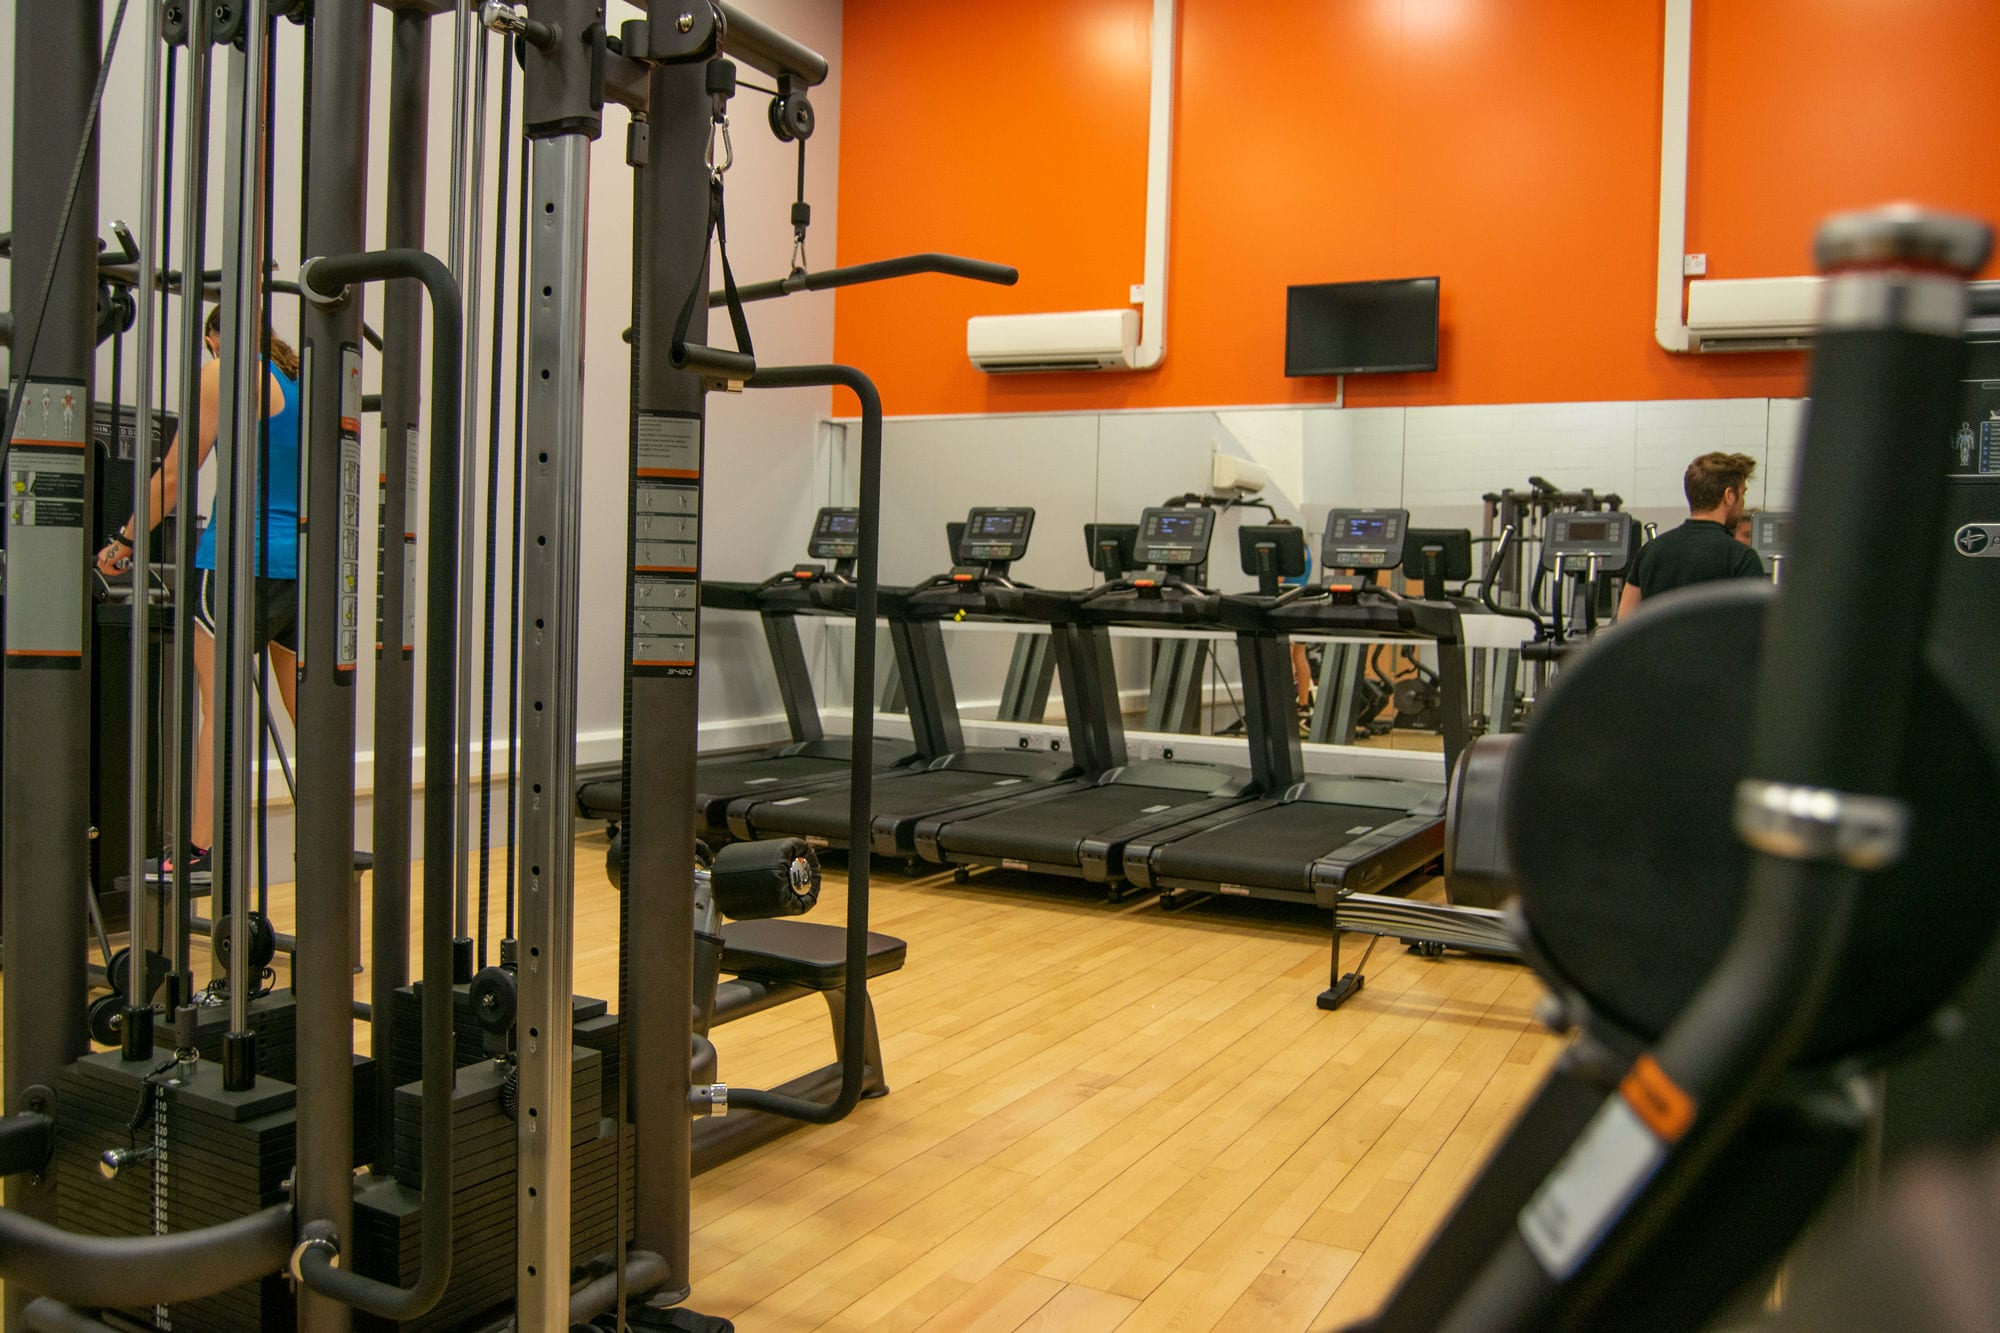 Fitness studio running machines